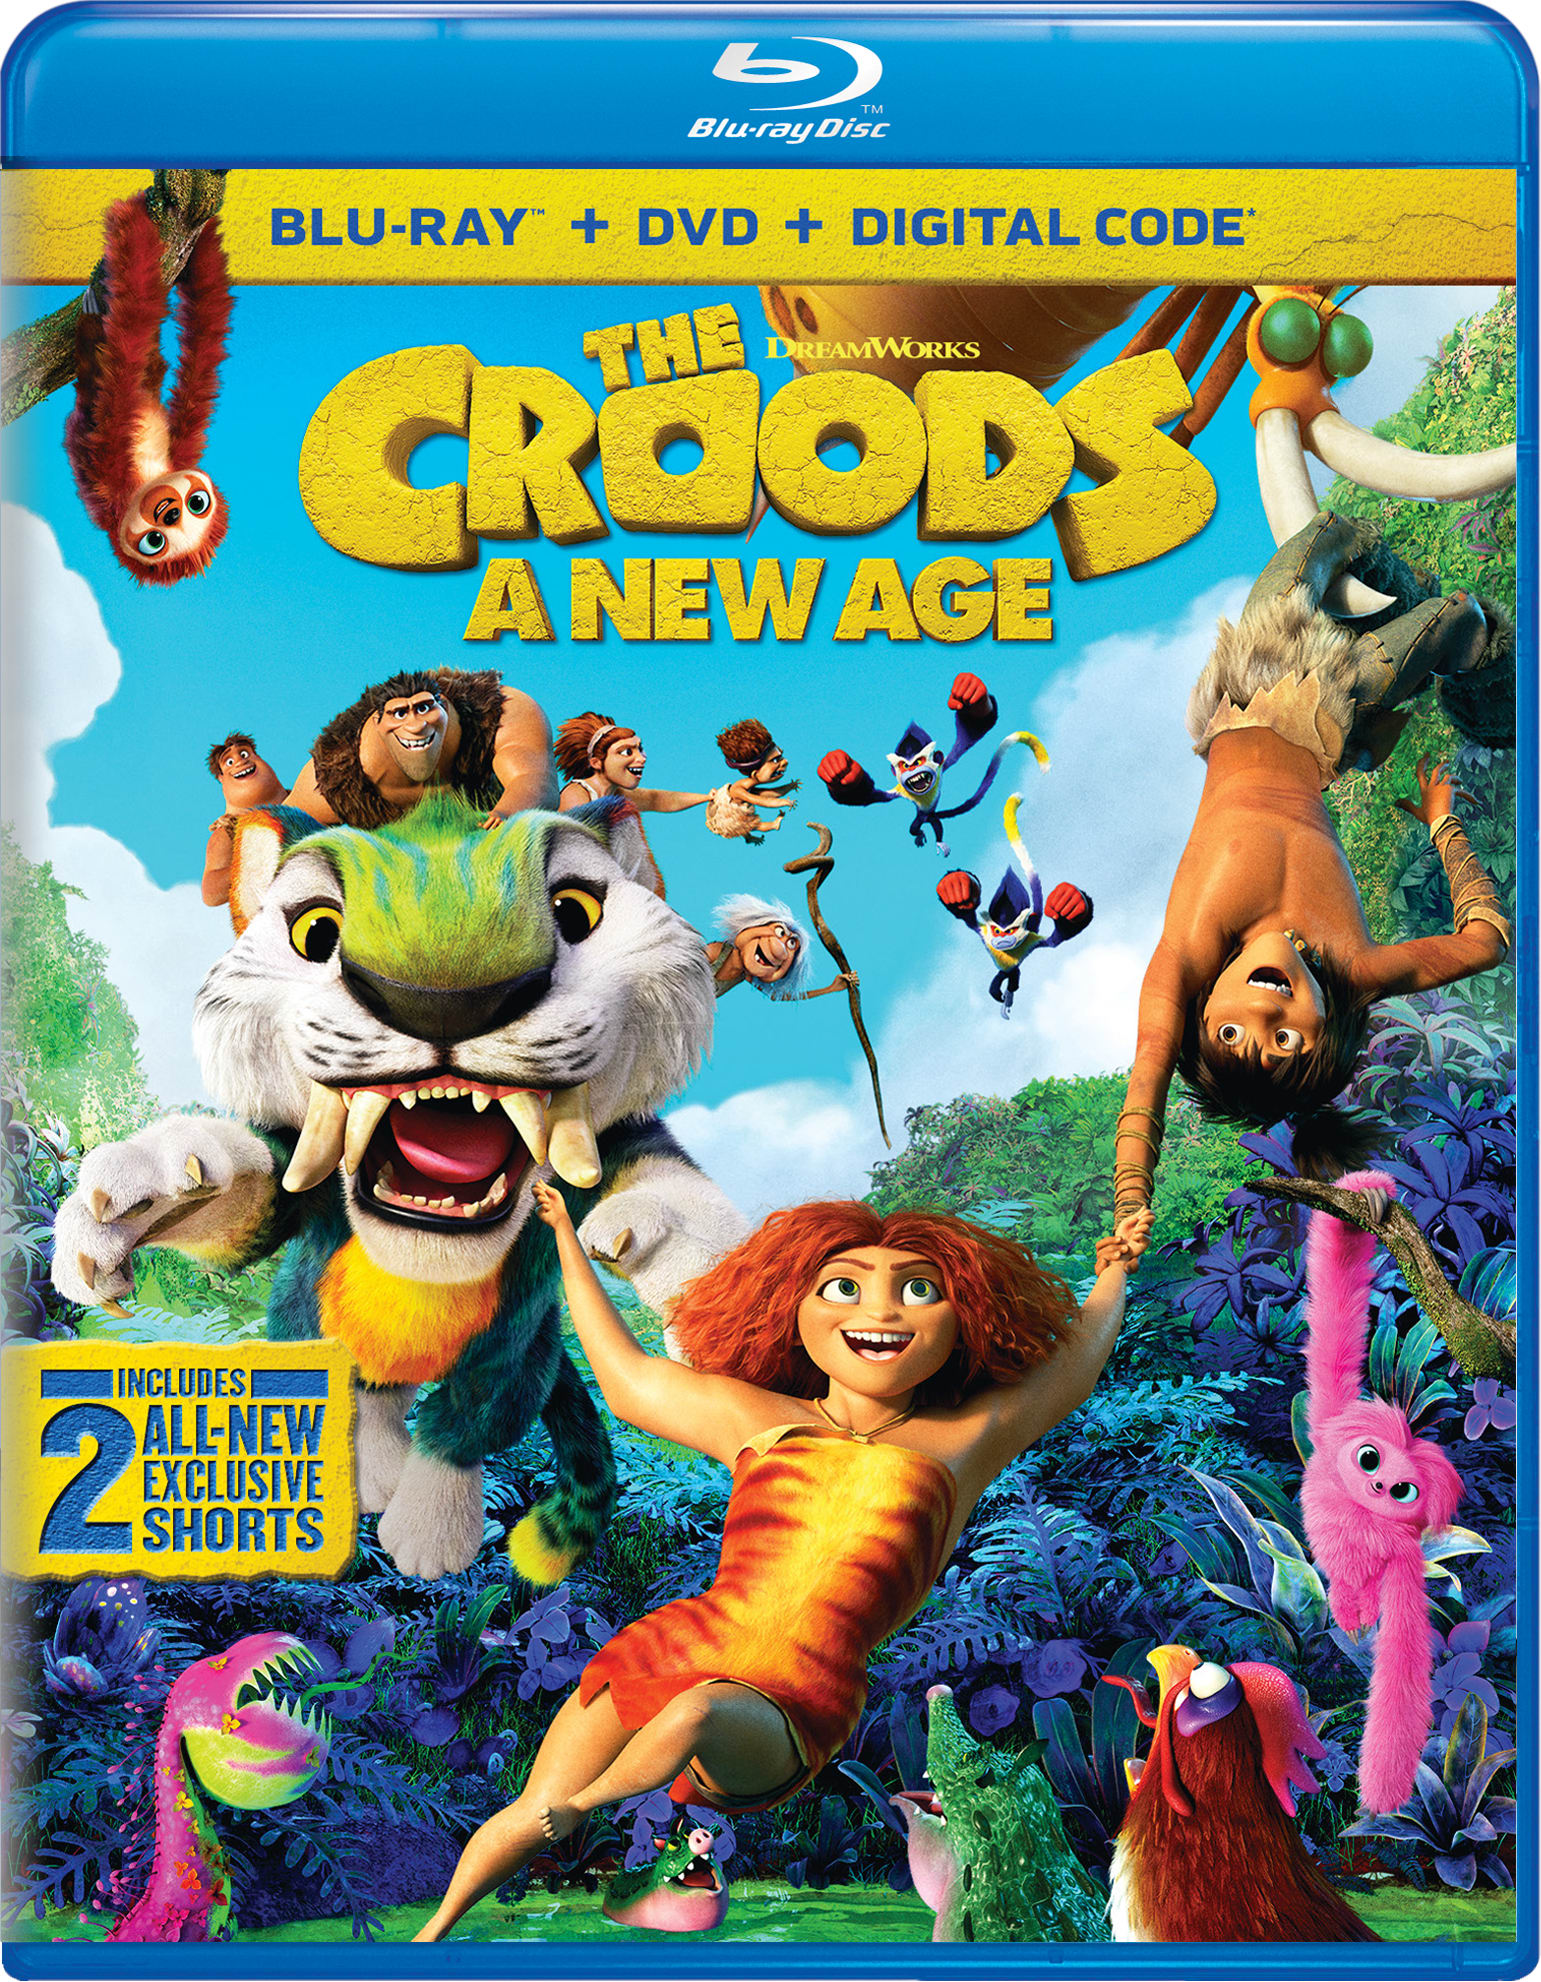 The Croods 2 - A New Age (with DVD) [Blu-ray]